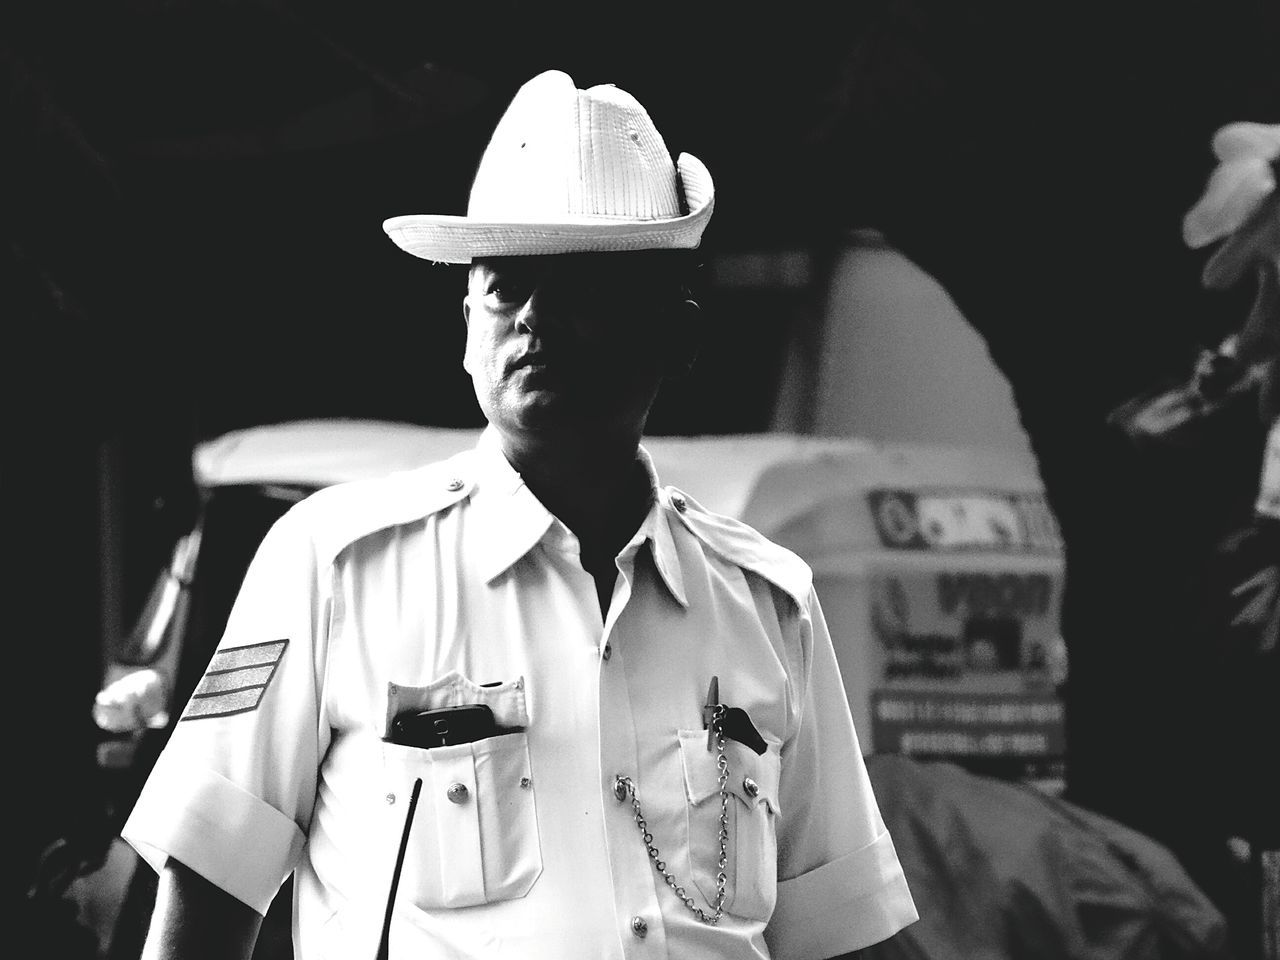 What I Value sometimes, they are taken for granted, I believe. Police Traffic Police  Life People Streetphotography EyeEm Best Shots EyeEm Gallery Policeman The Portraitist - 2016 EyeEm Awards